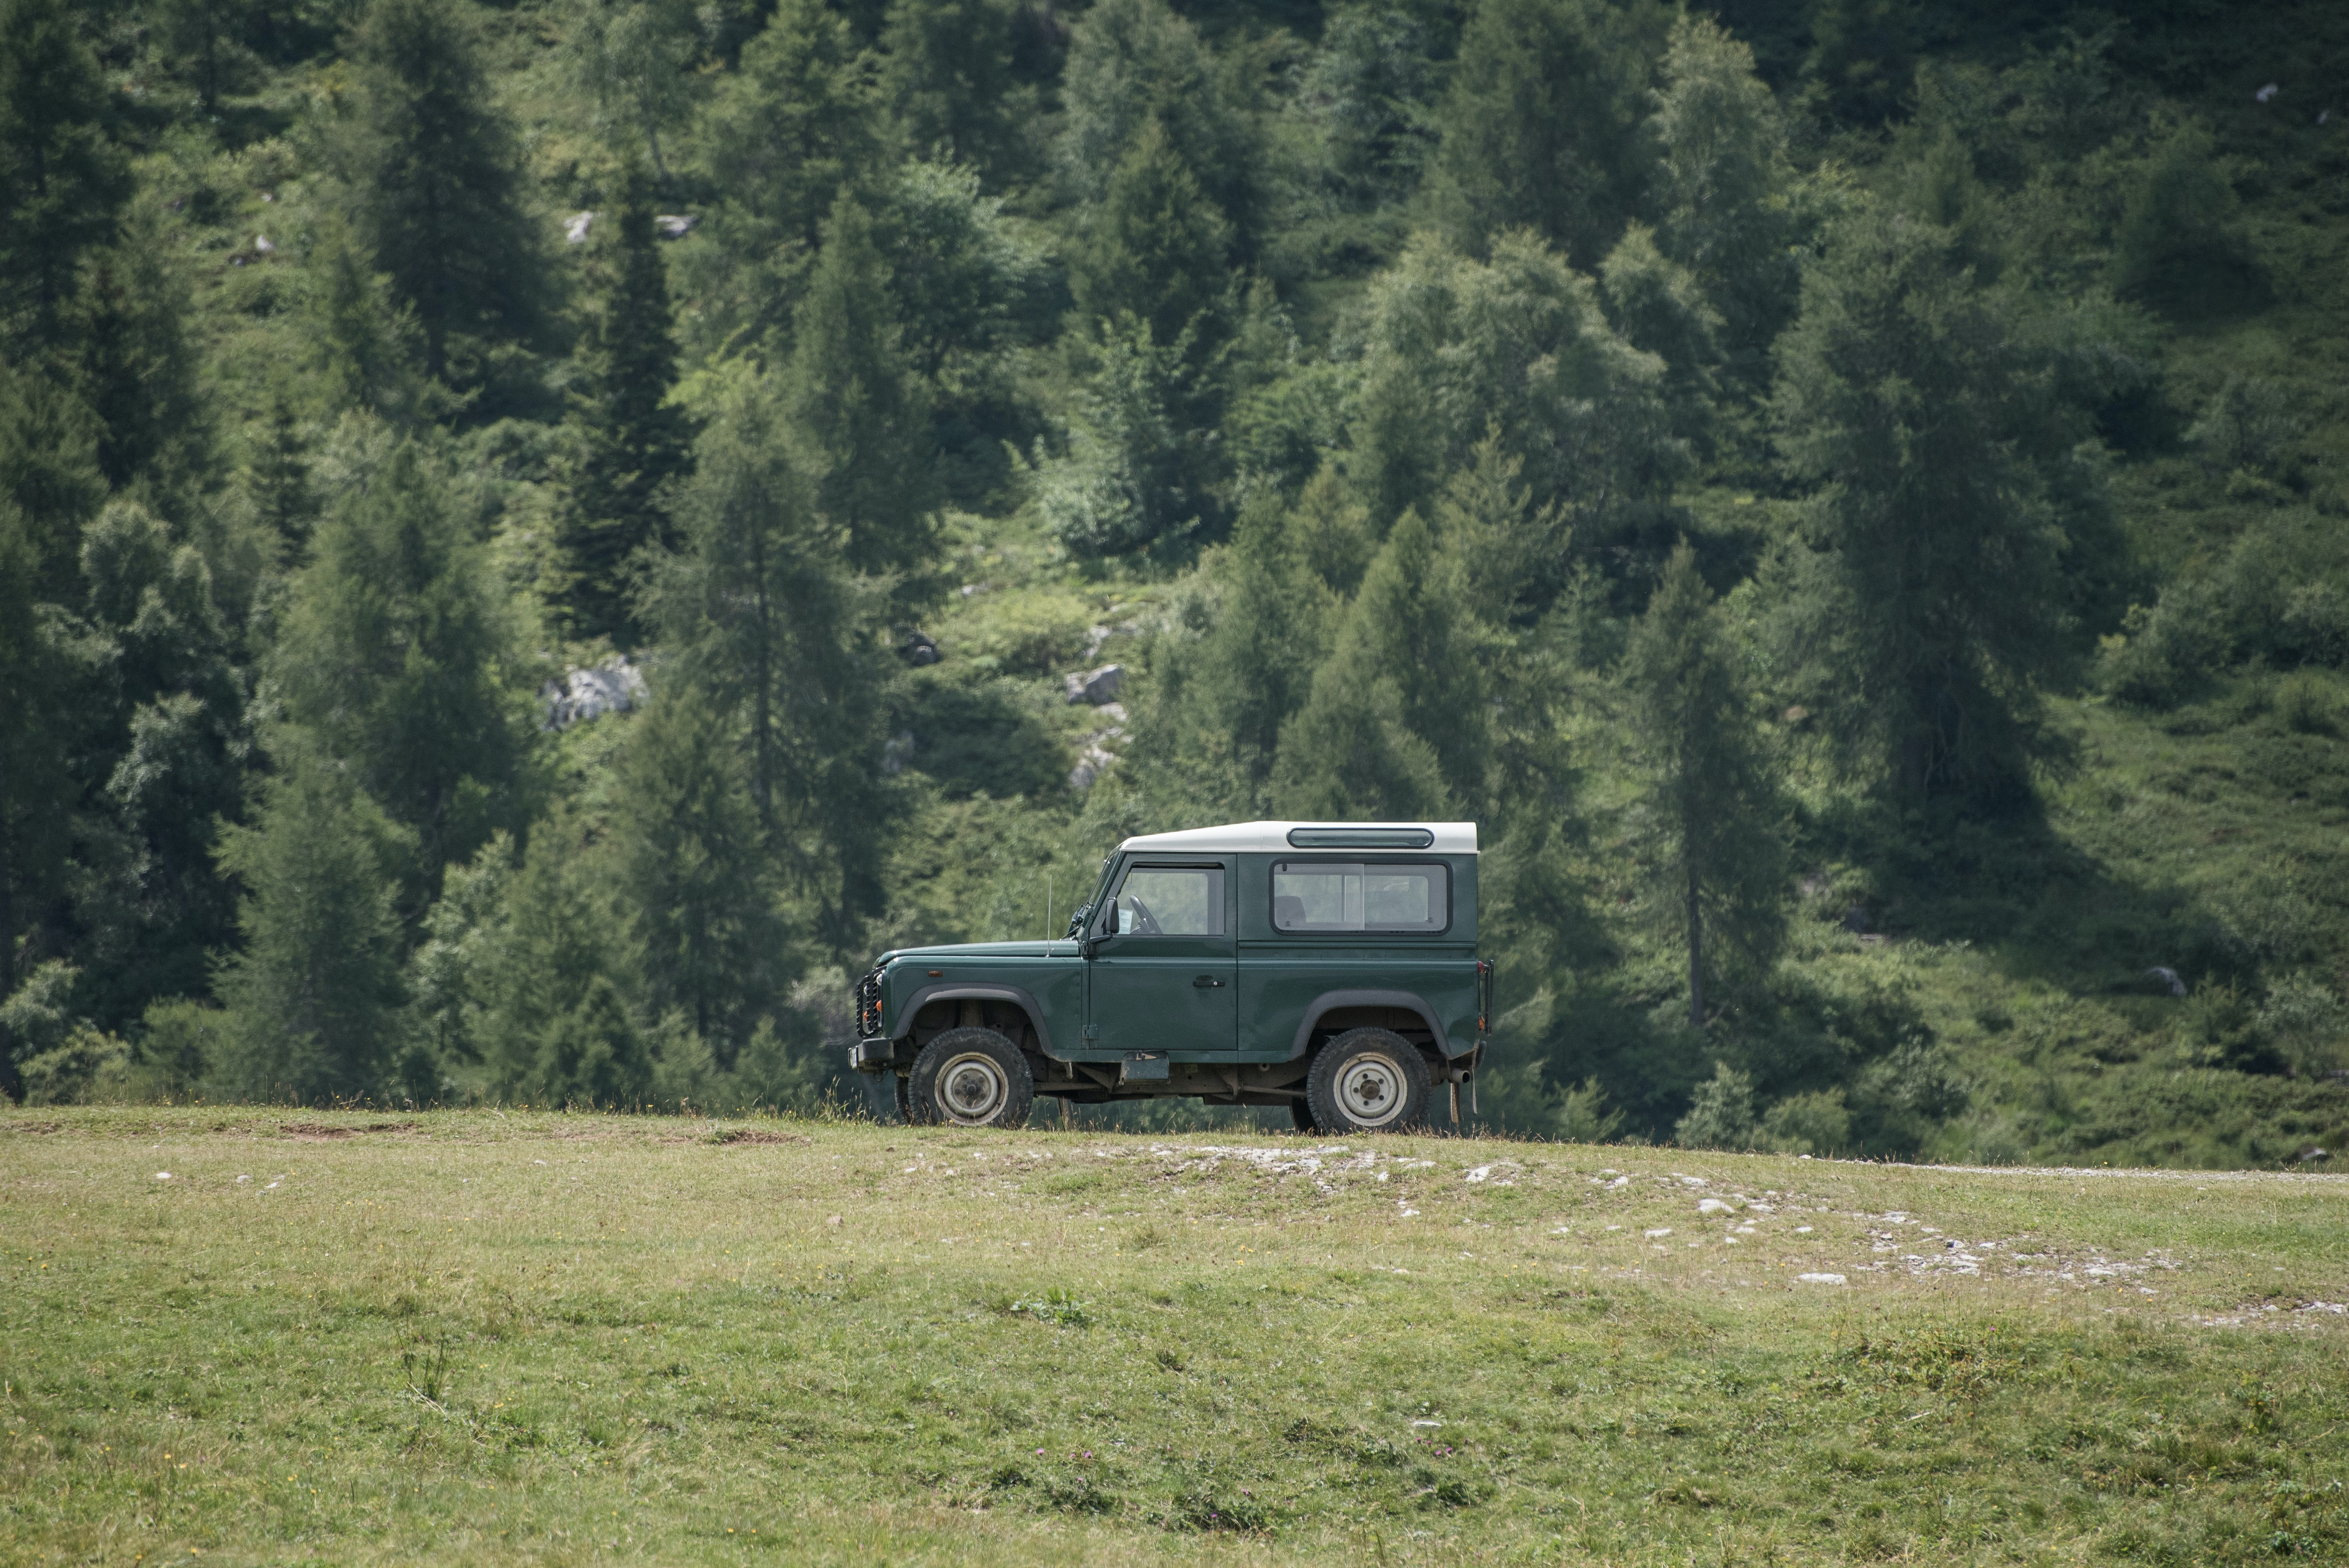 green off-road vehicle on green grass field